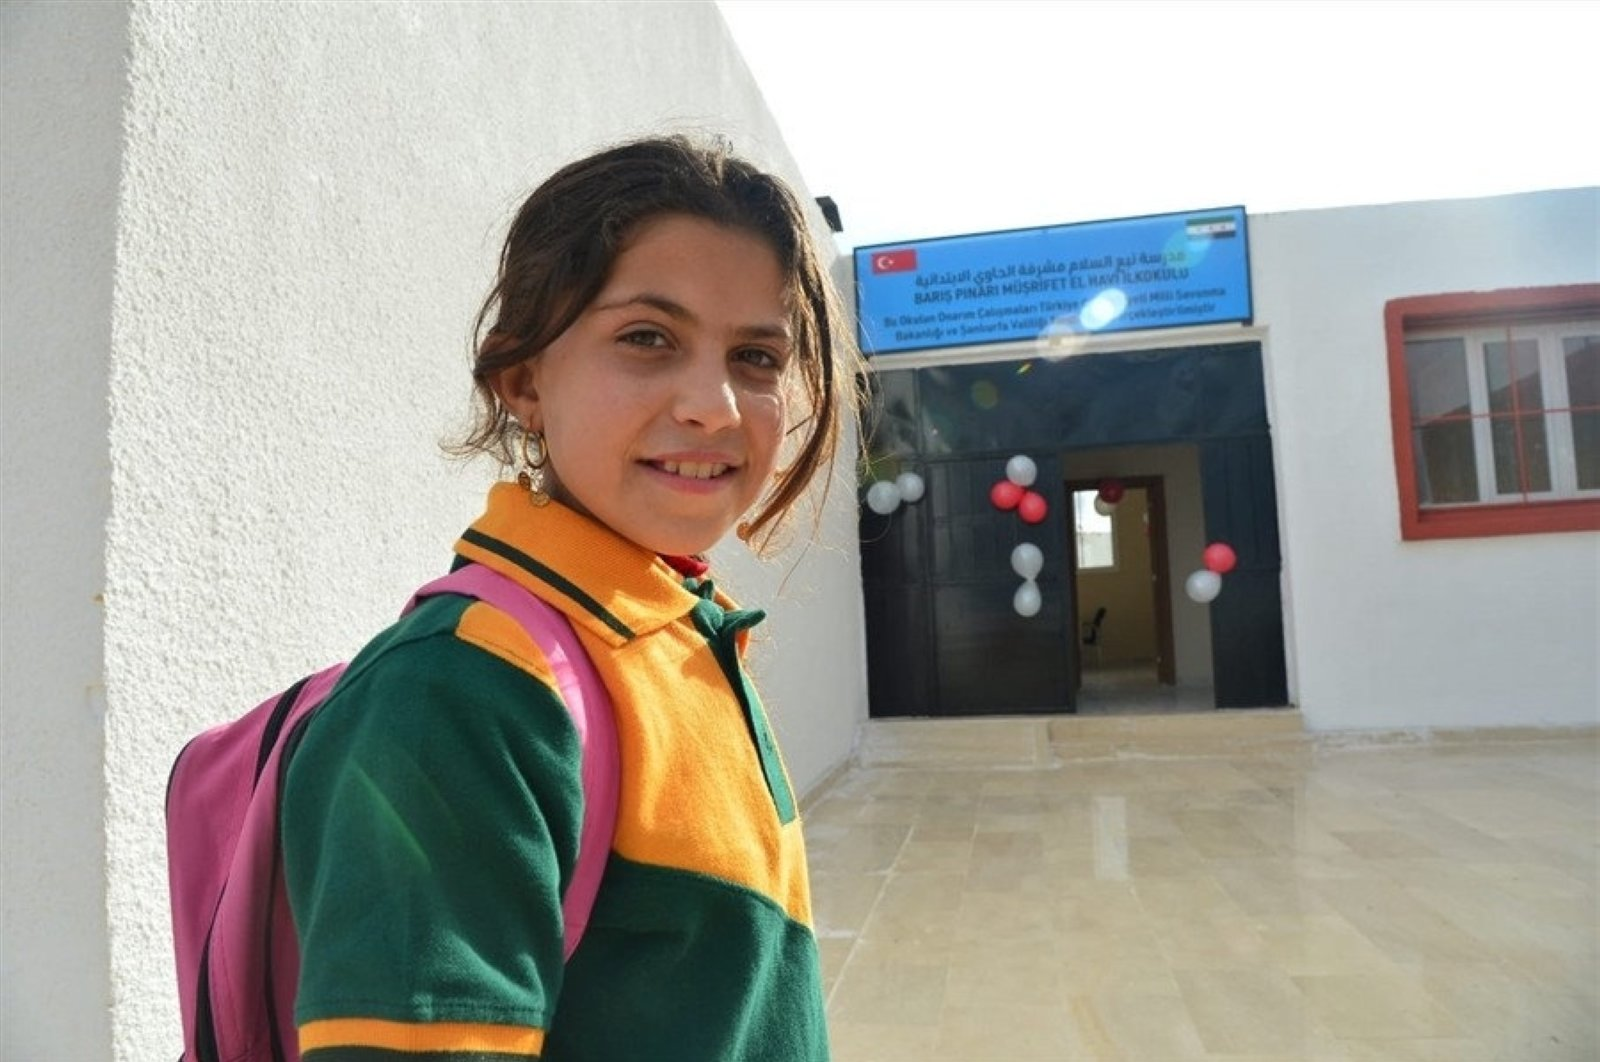 A school that was damaged by YPG/PKK terrorists is ready to host students after being restored by Turkey, Dec. 4, 2019. (IHA Photo)